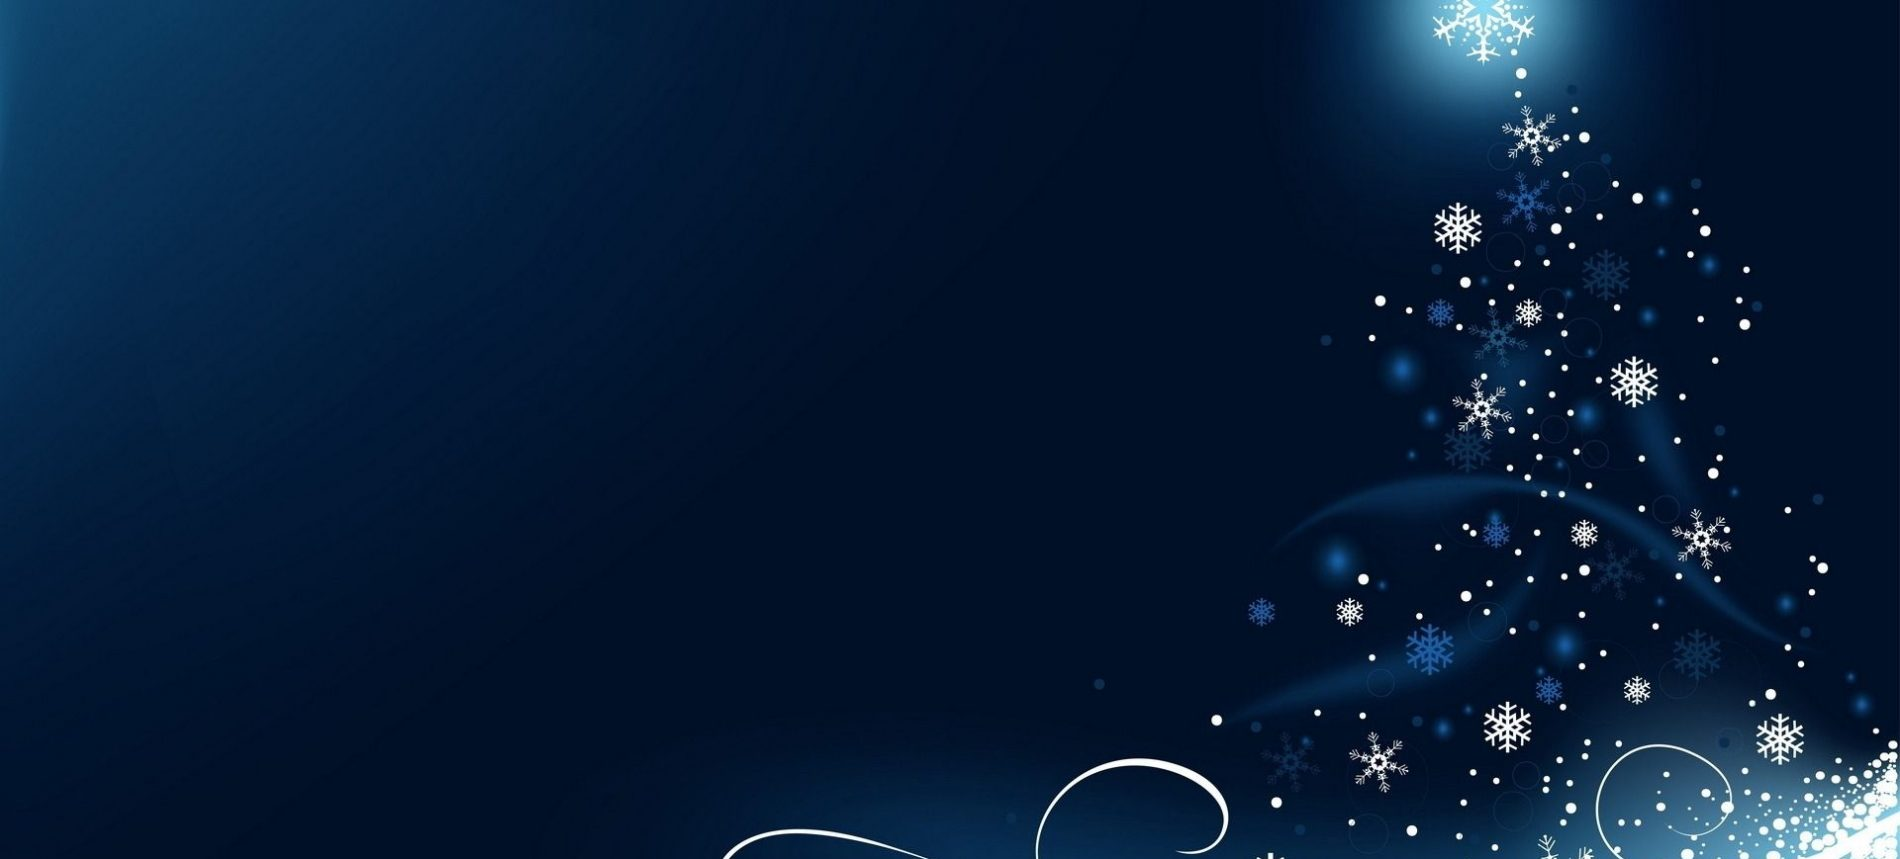 Cropped Christmas Snow Desktop Hd Wallpapers Free Download